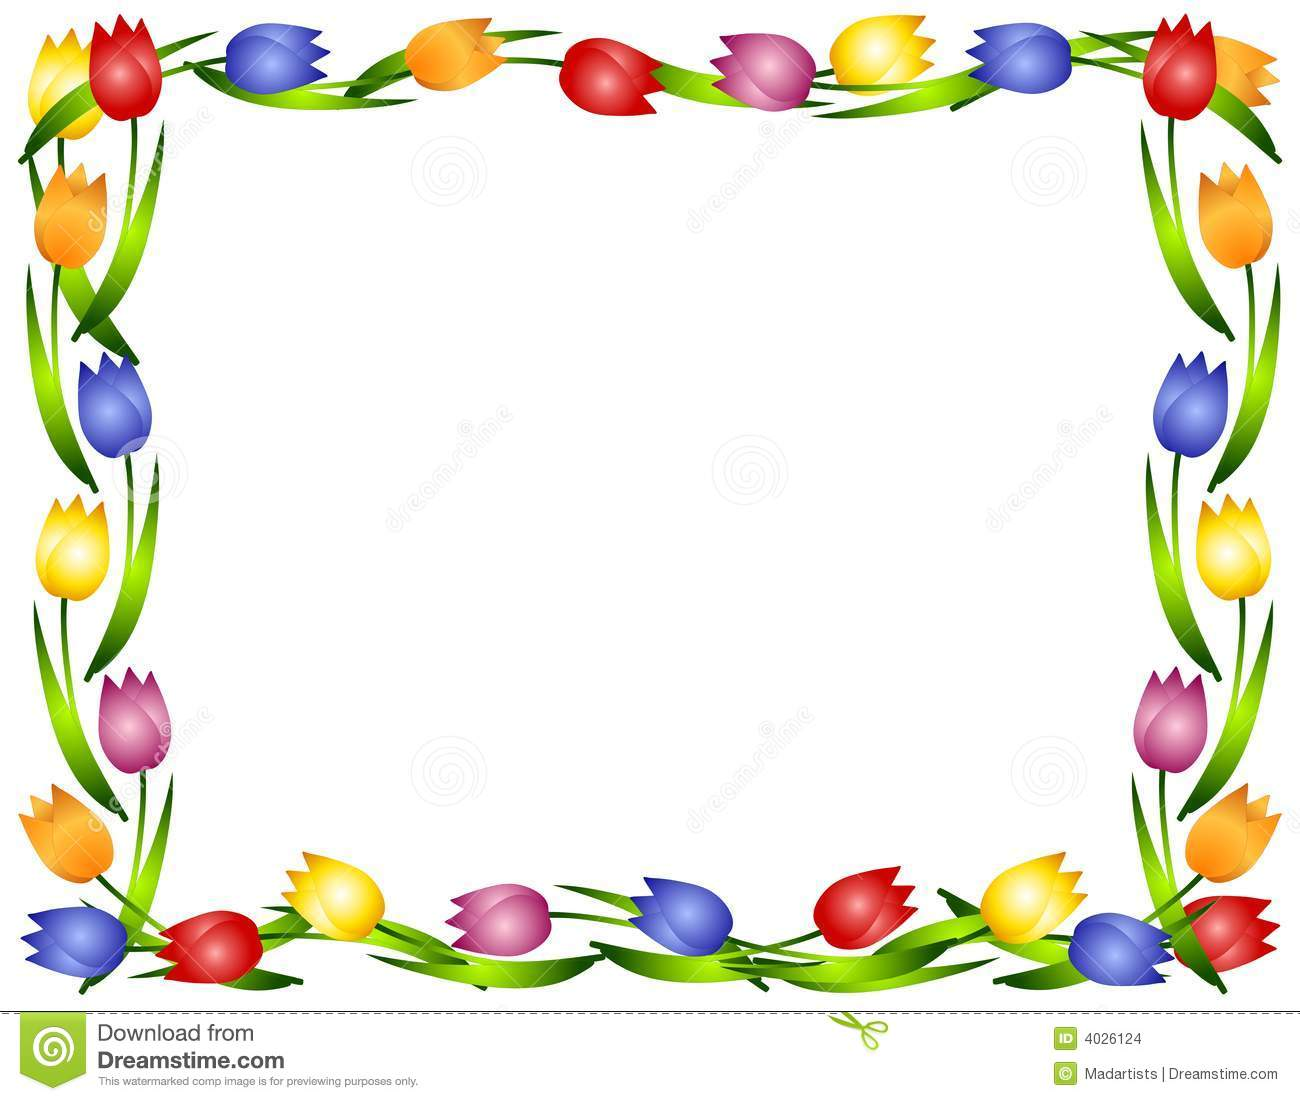 flower frame clipart at getdrawings com free for personal use rh getdrawings com border clipart for word border clip art free printable